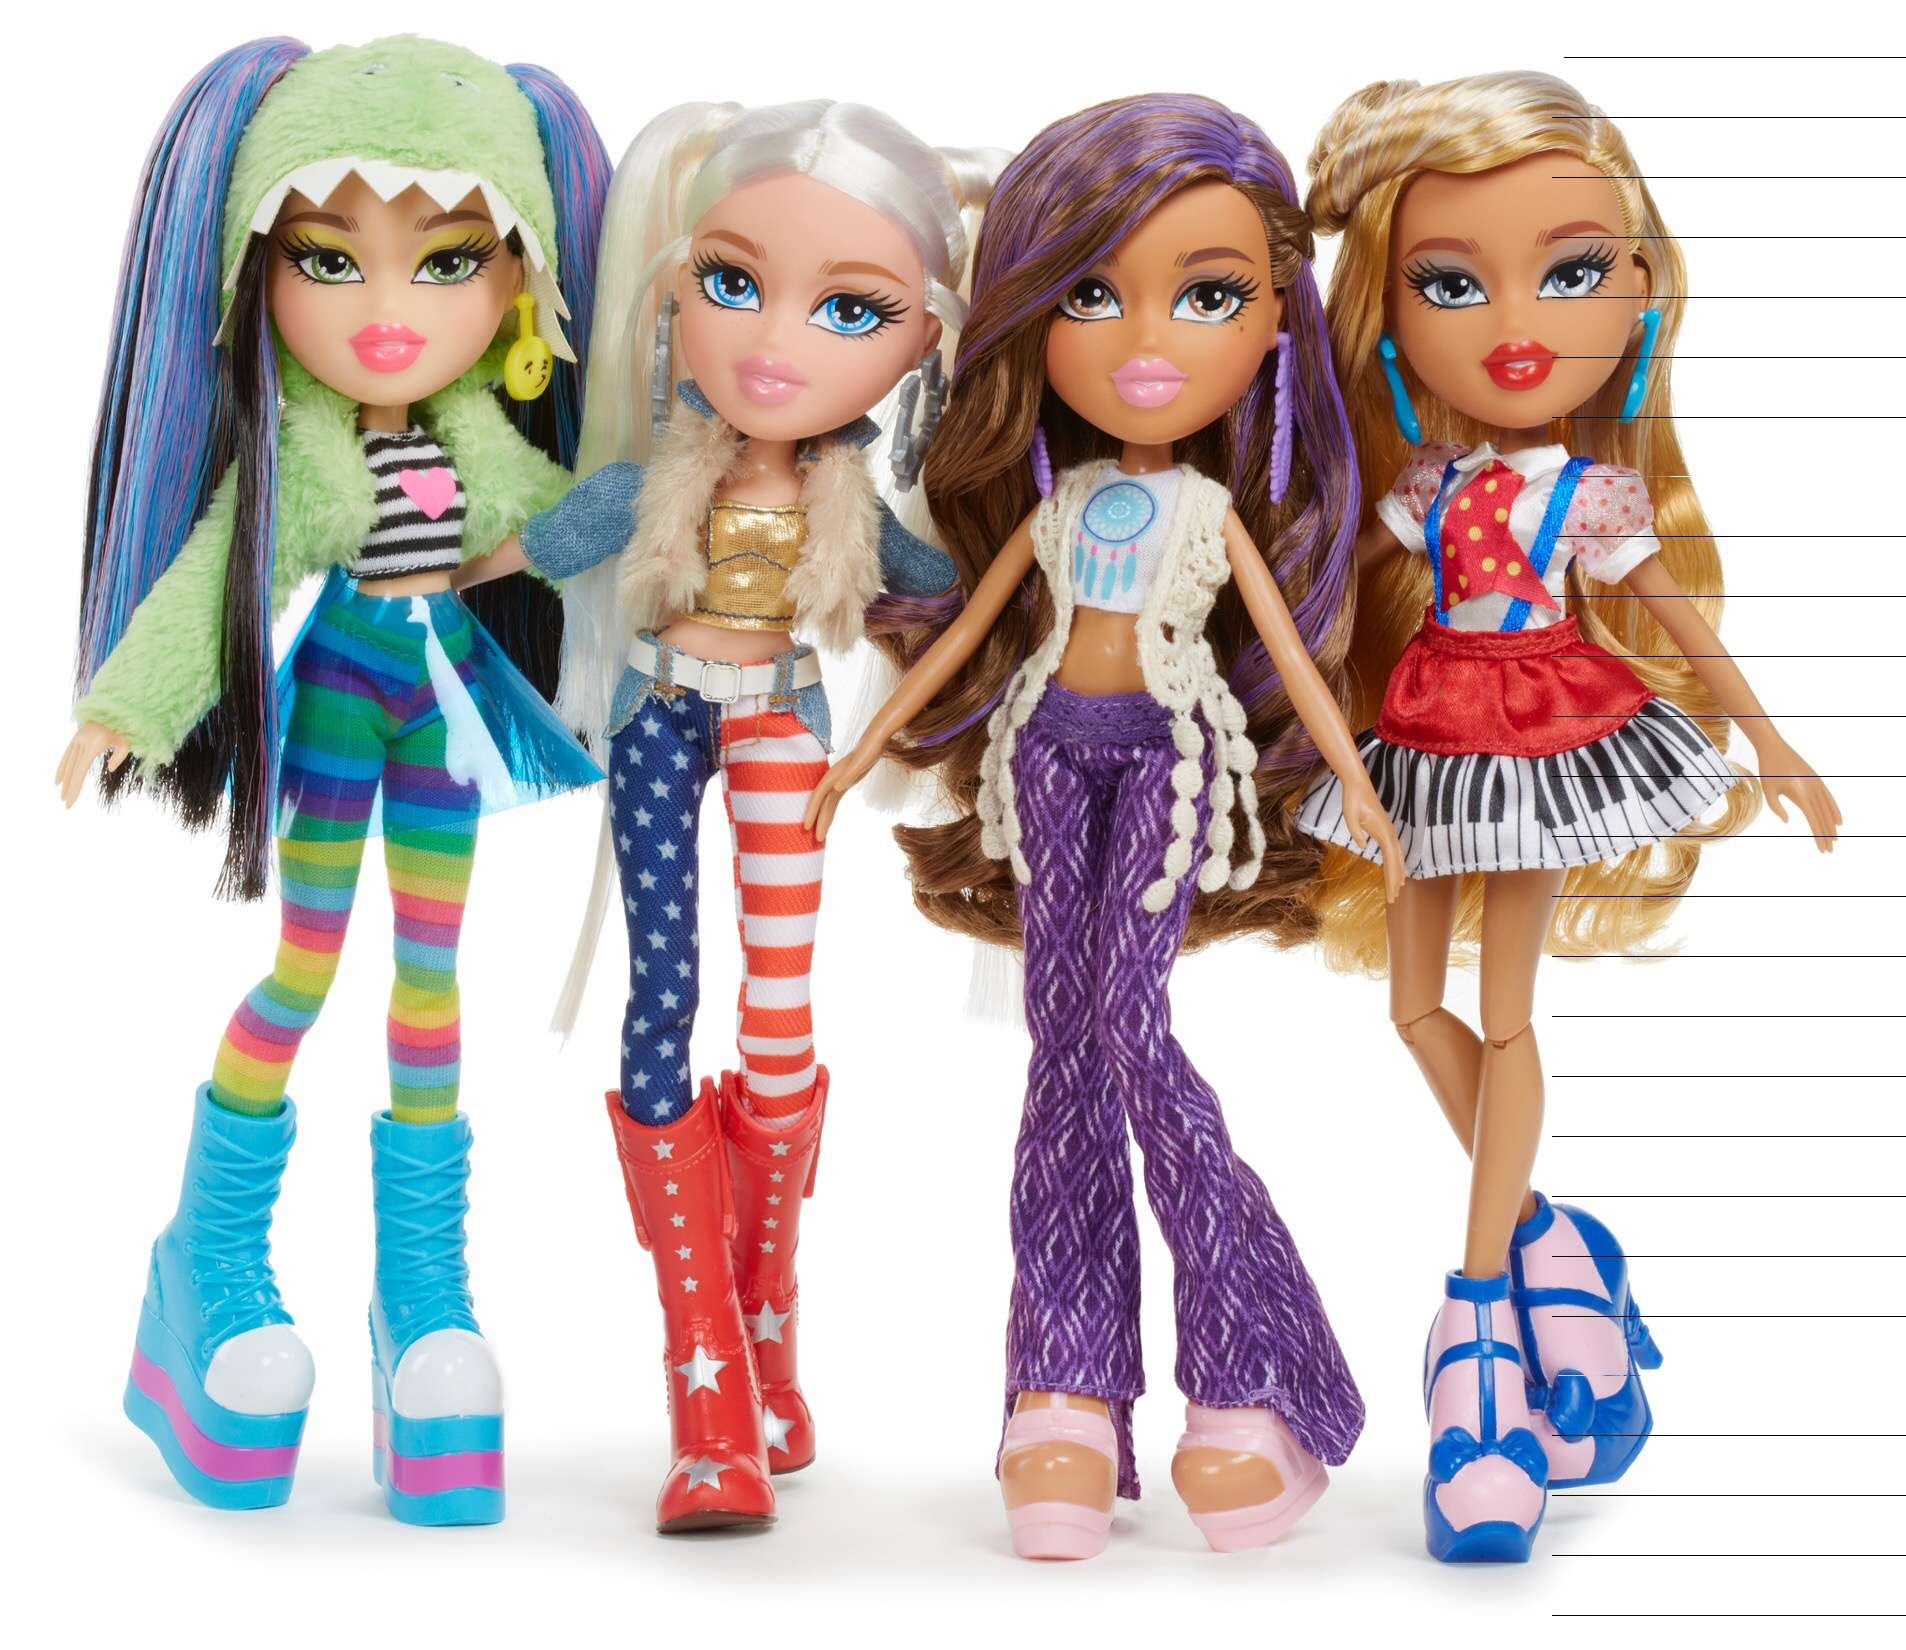 Uncategorized Bratz Girl bratz bizzimummy complete with super cool festival fashions and accessories along a second outfit the girls are ready to hit this summers must go festivals